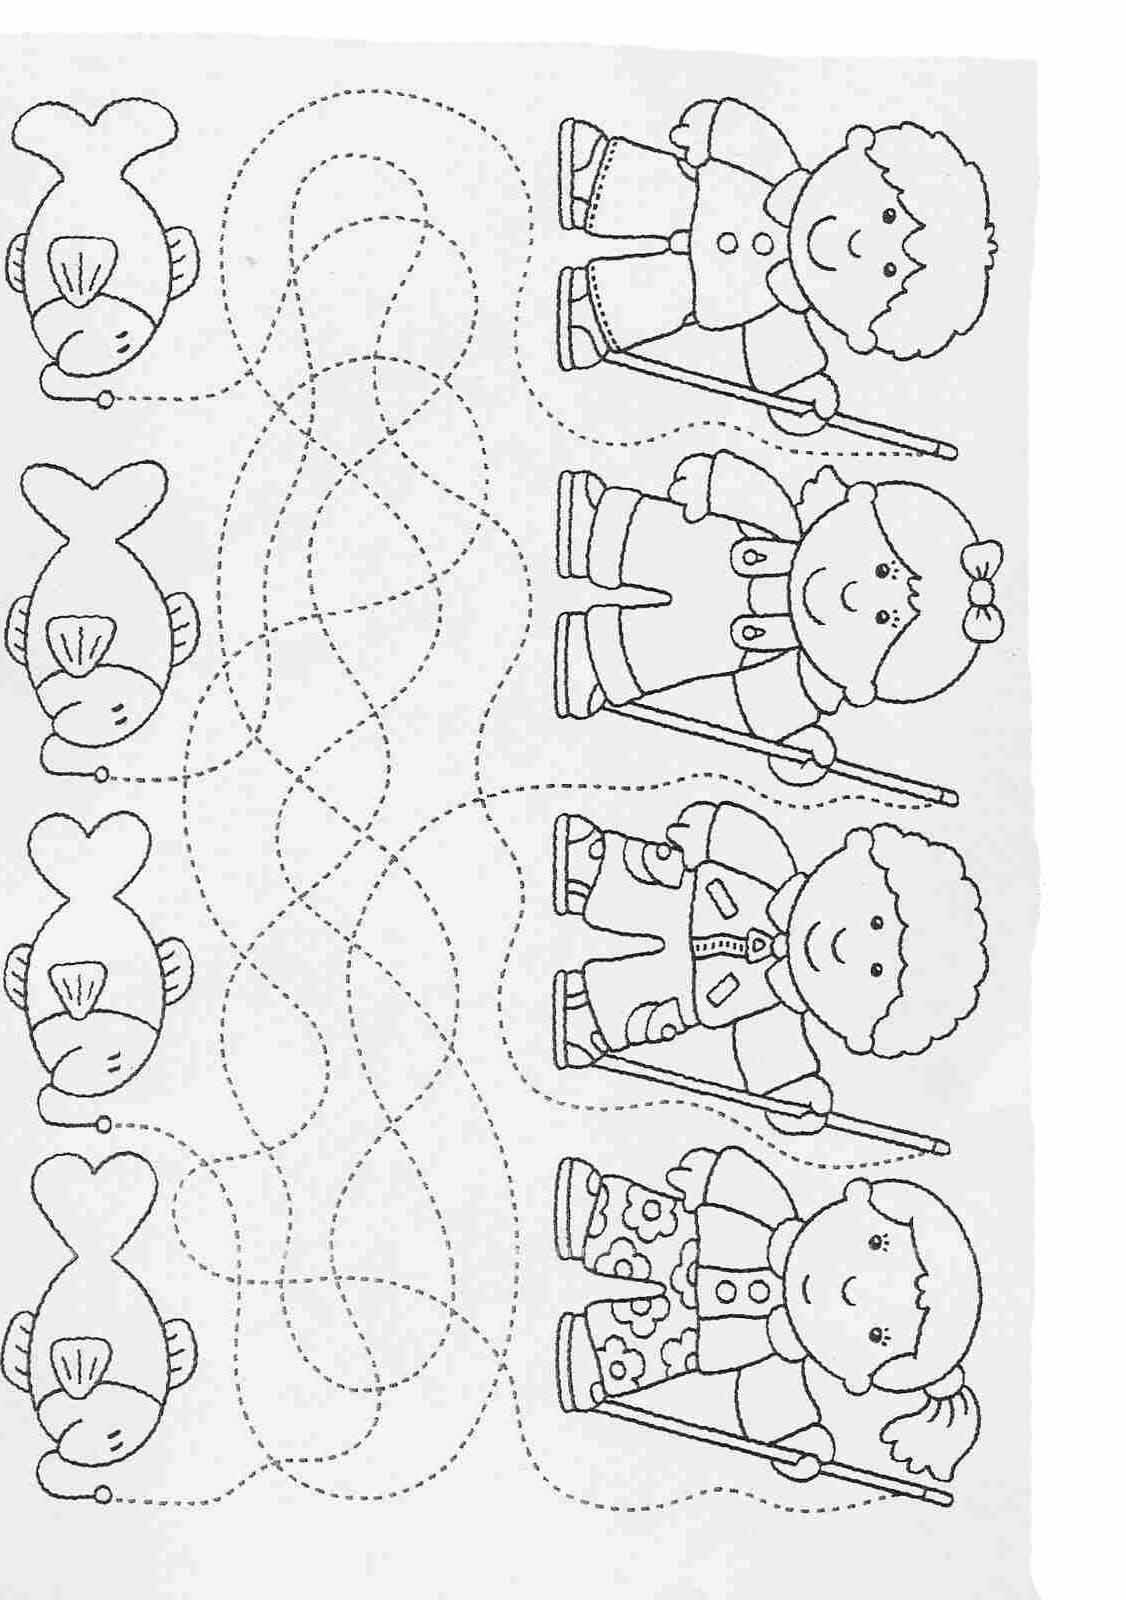 Printable worksheets for kids. Complete the drawings 37 ...